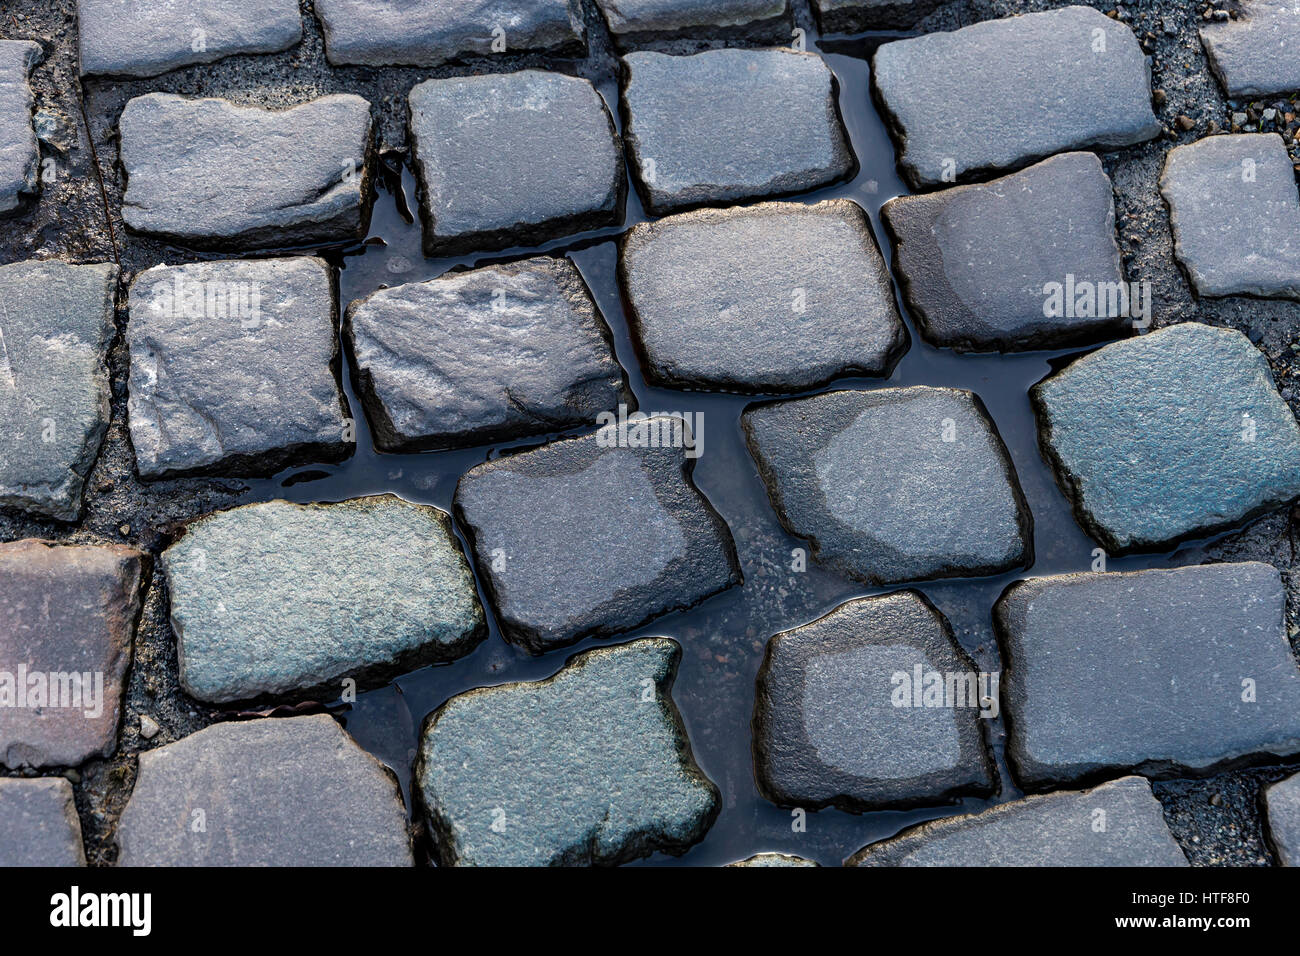 cobblestones in an old town - Stock Image